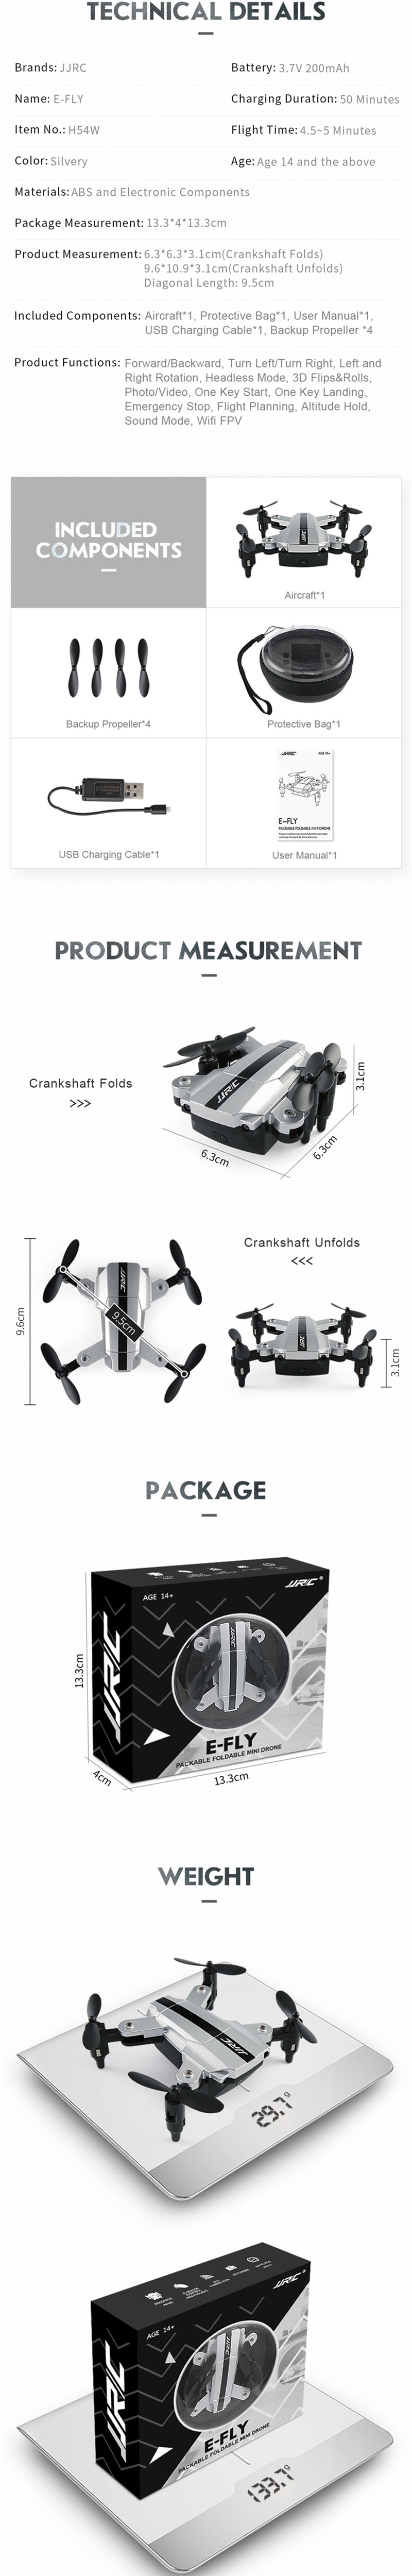 JJRC H54W E-Fly WiFi FPV Mini Foldable Drone With 480P Camera Altitude Hold Mode RC Quadcopter BNF